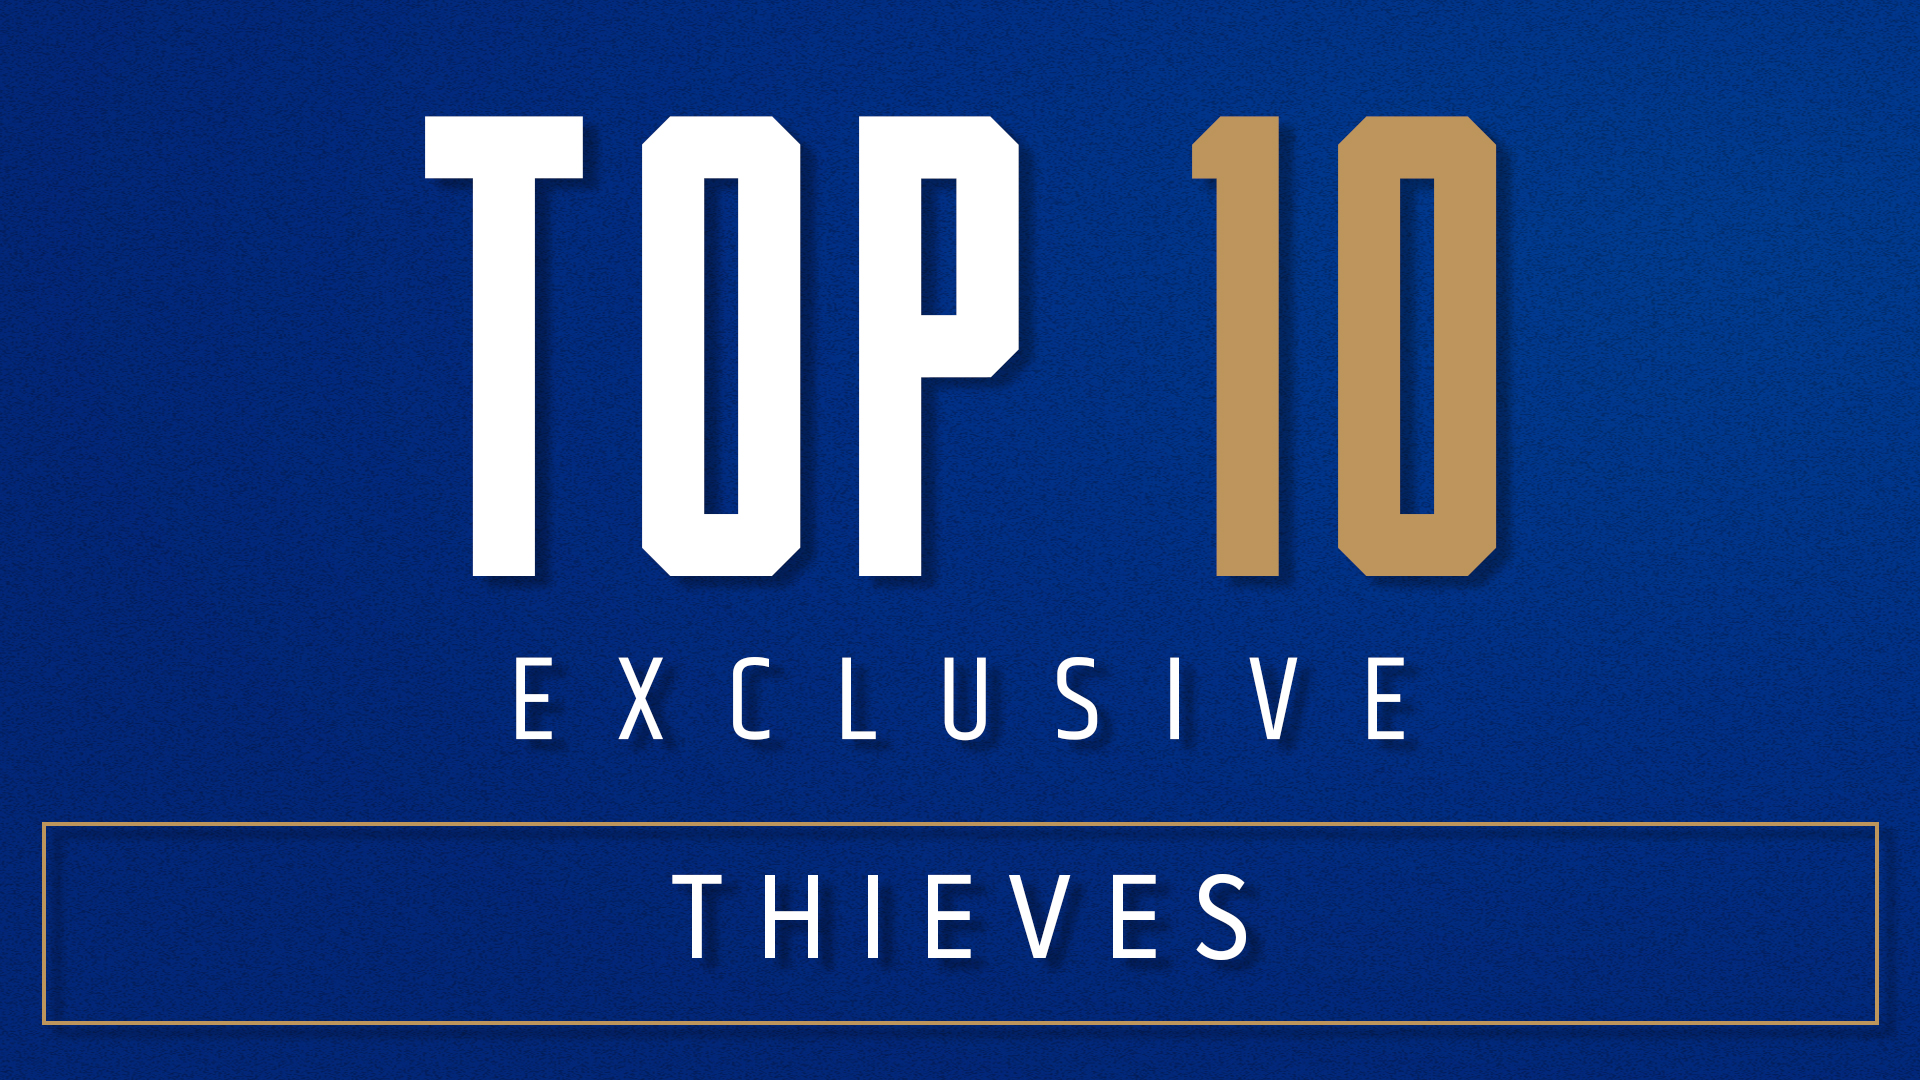 Top 10 Thieves